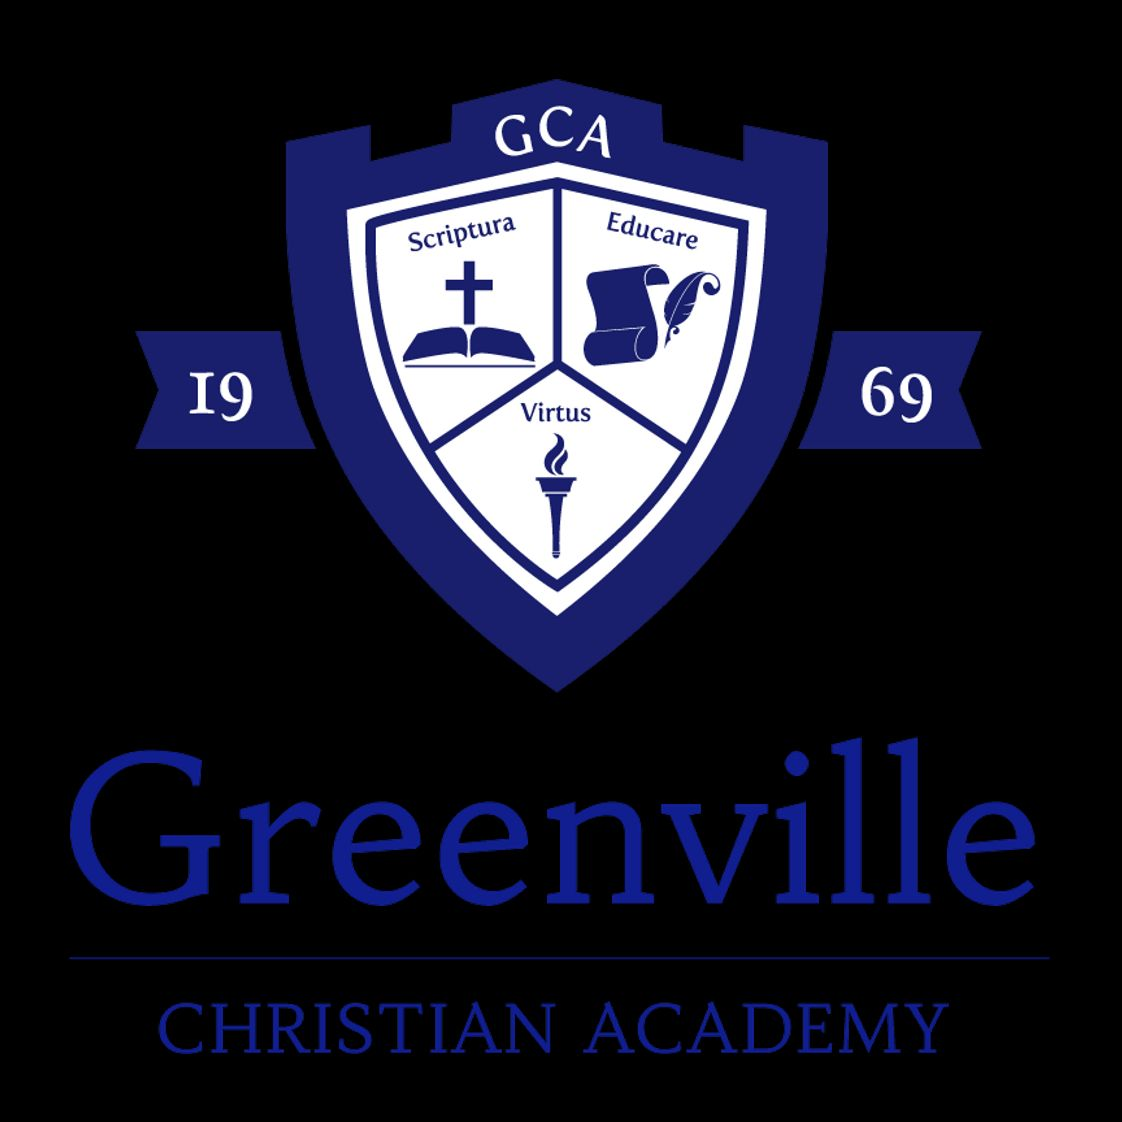 Greenville Christian Academy Photo #1 - GCA seeks to educate in Biblical truth and righteousness, to prepare students to be life-long learners by pursuing excellence, and to distinctively operate as a Christian school.